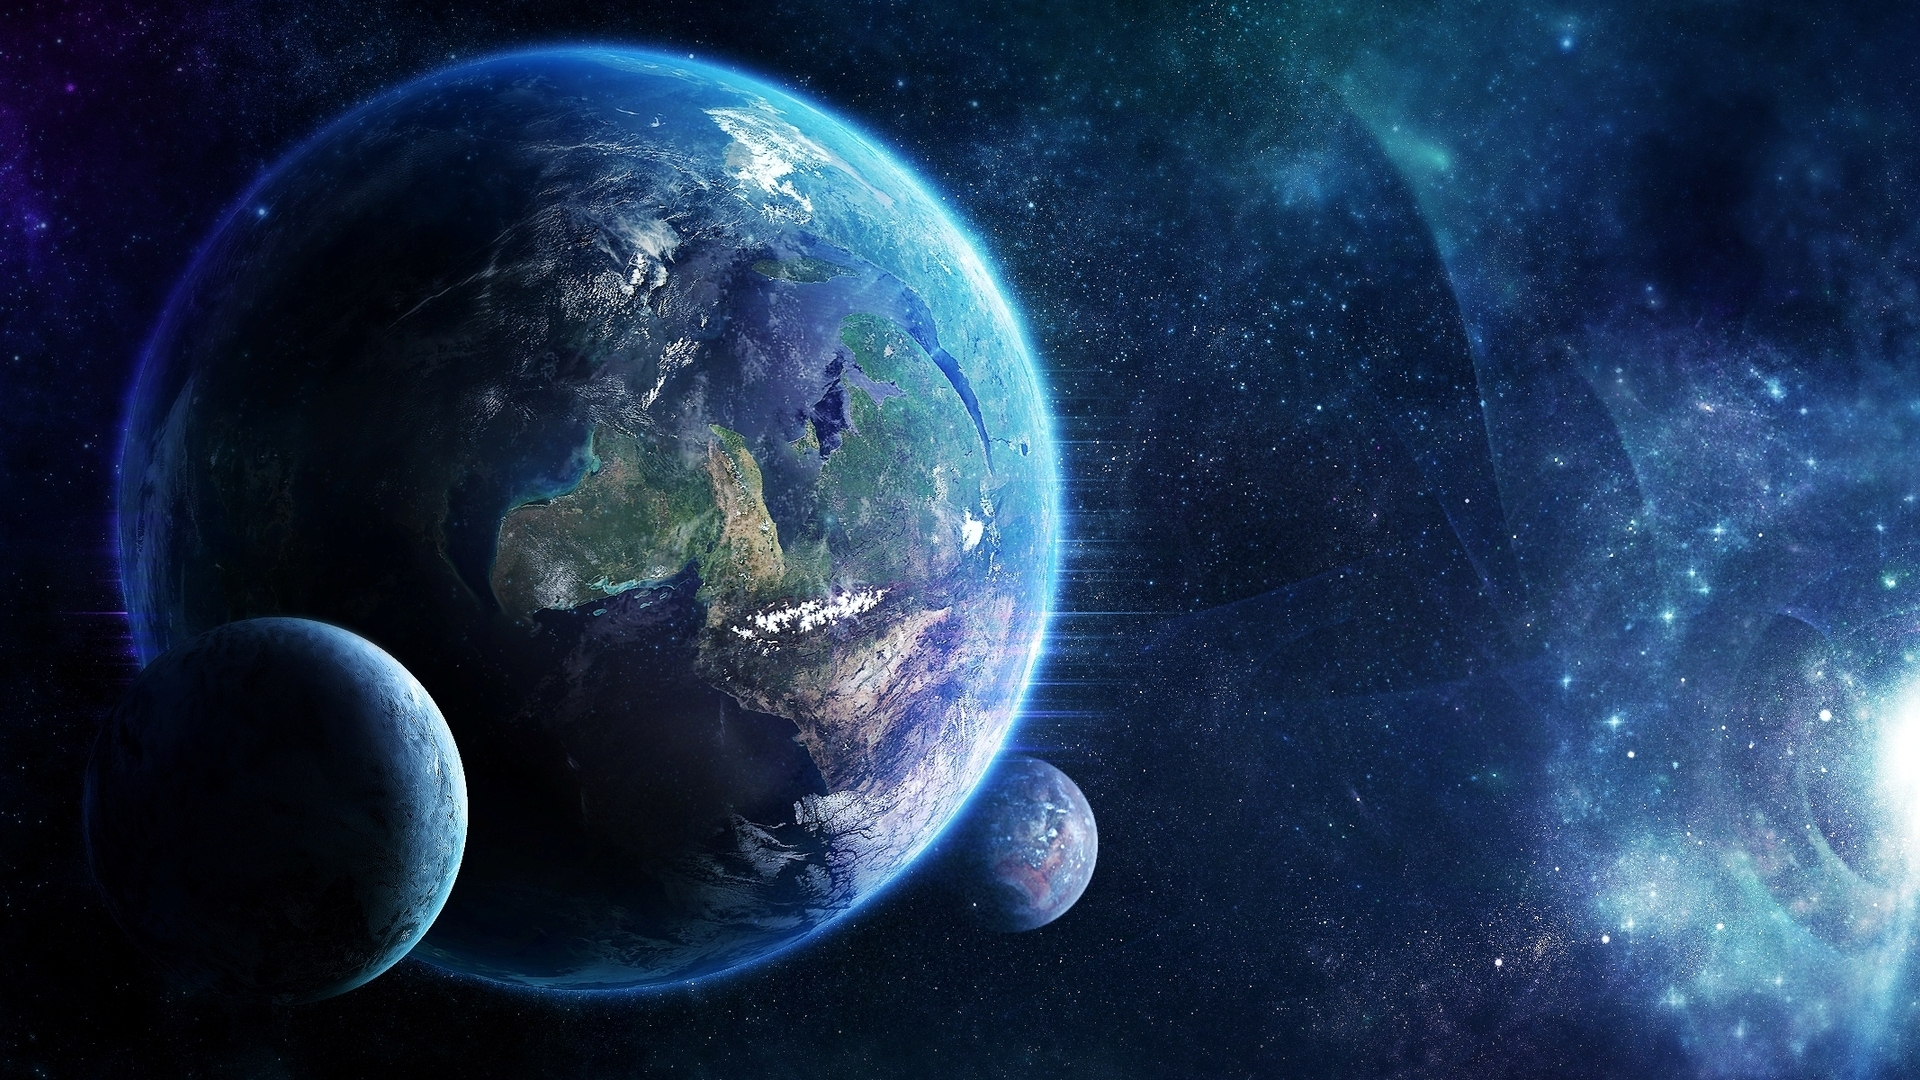 image - outer-space-planets-wallpaper-1 | middle earth roleplay